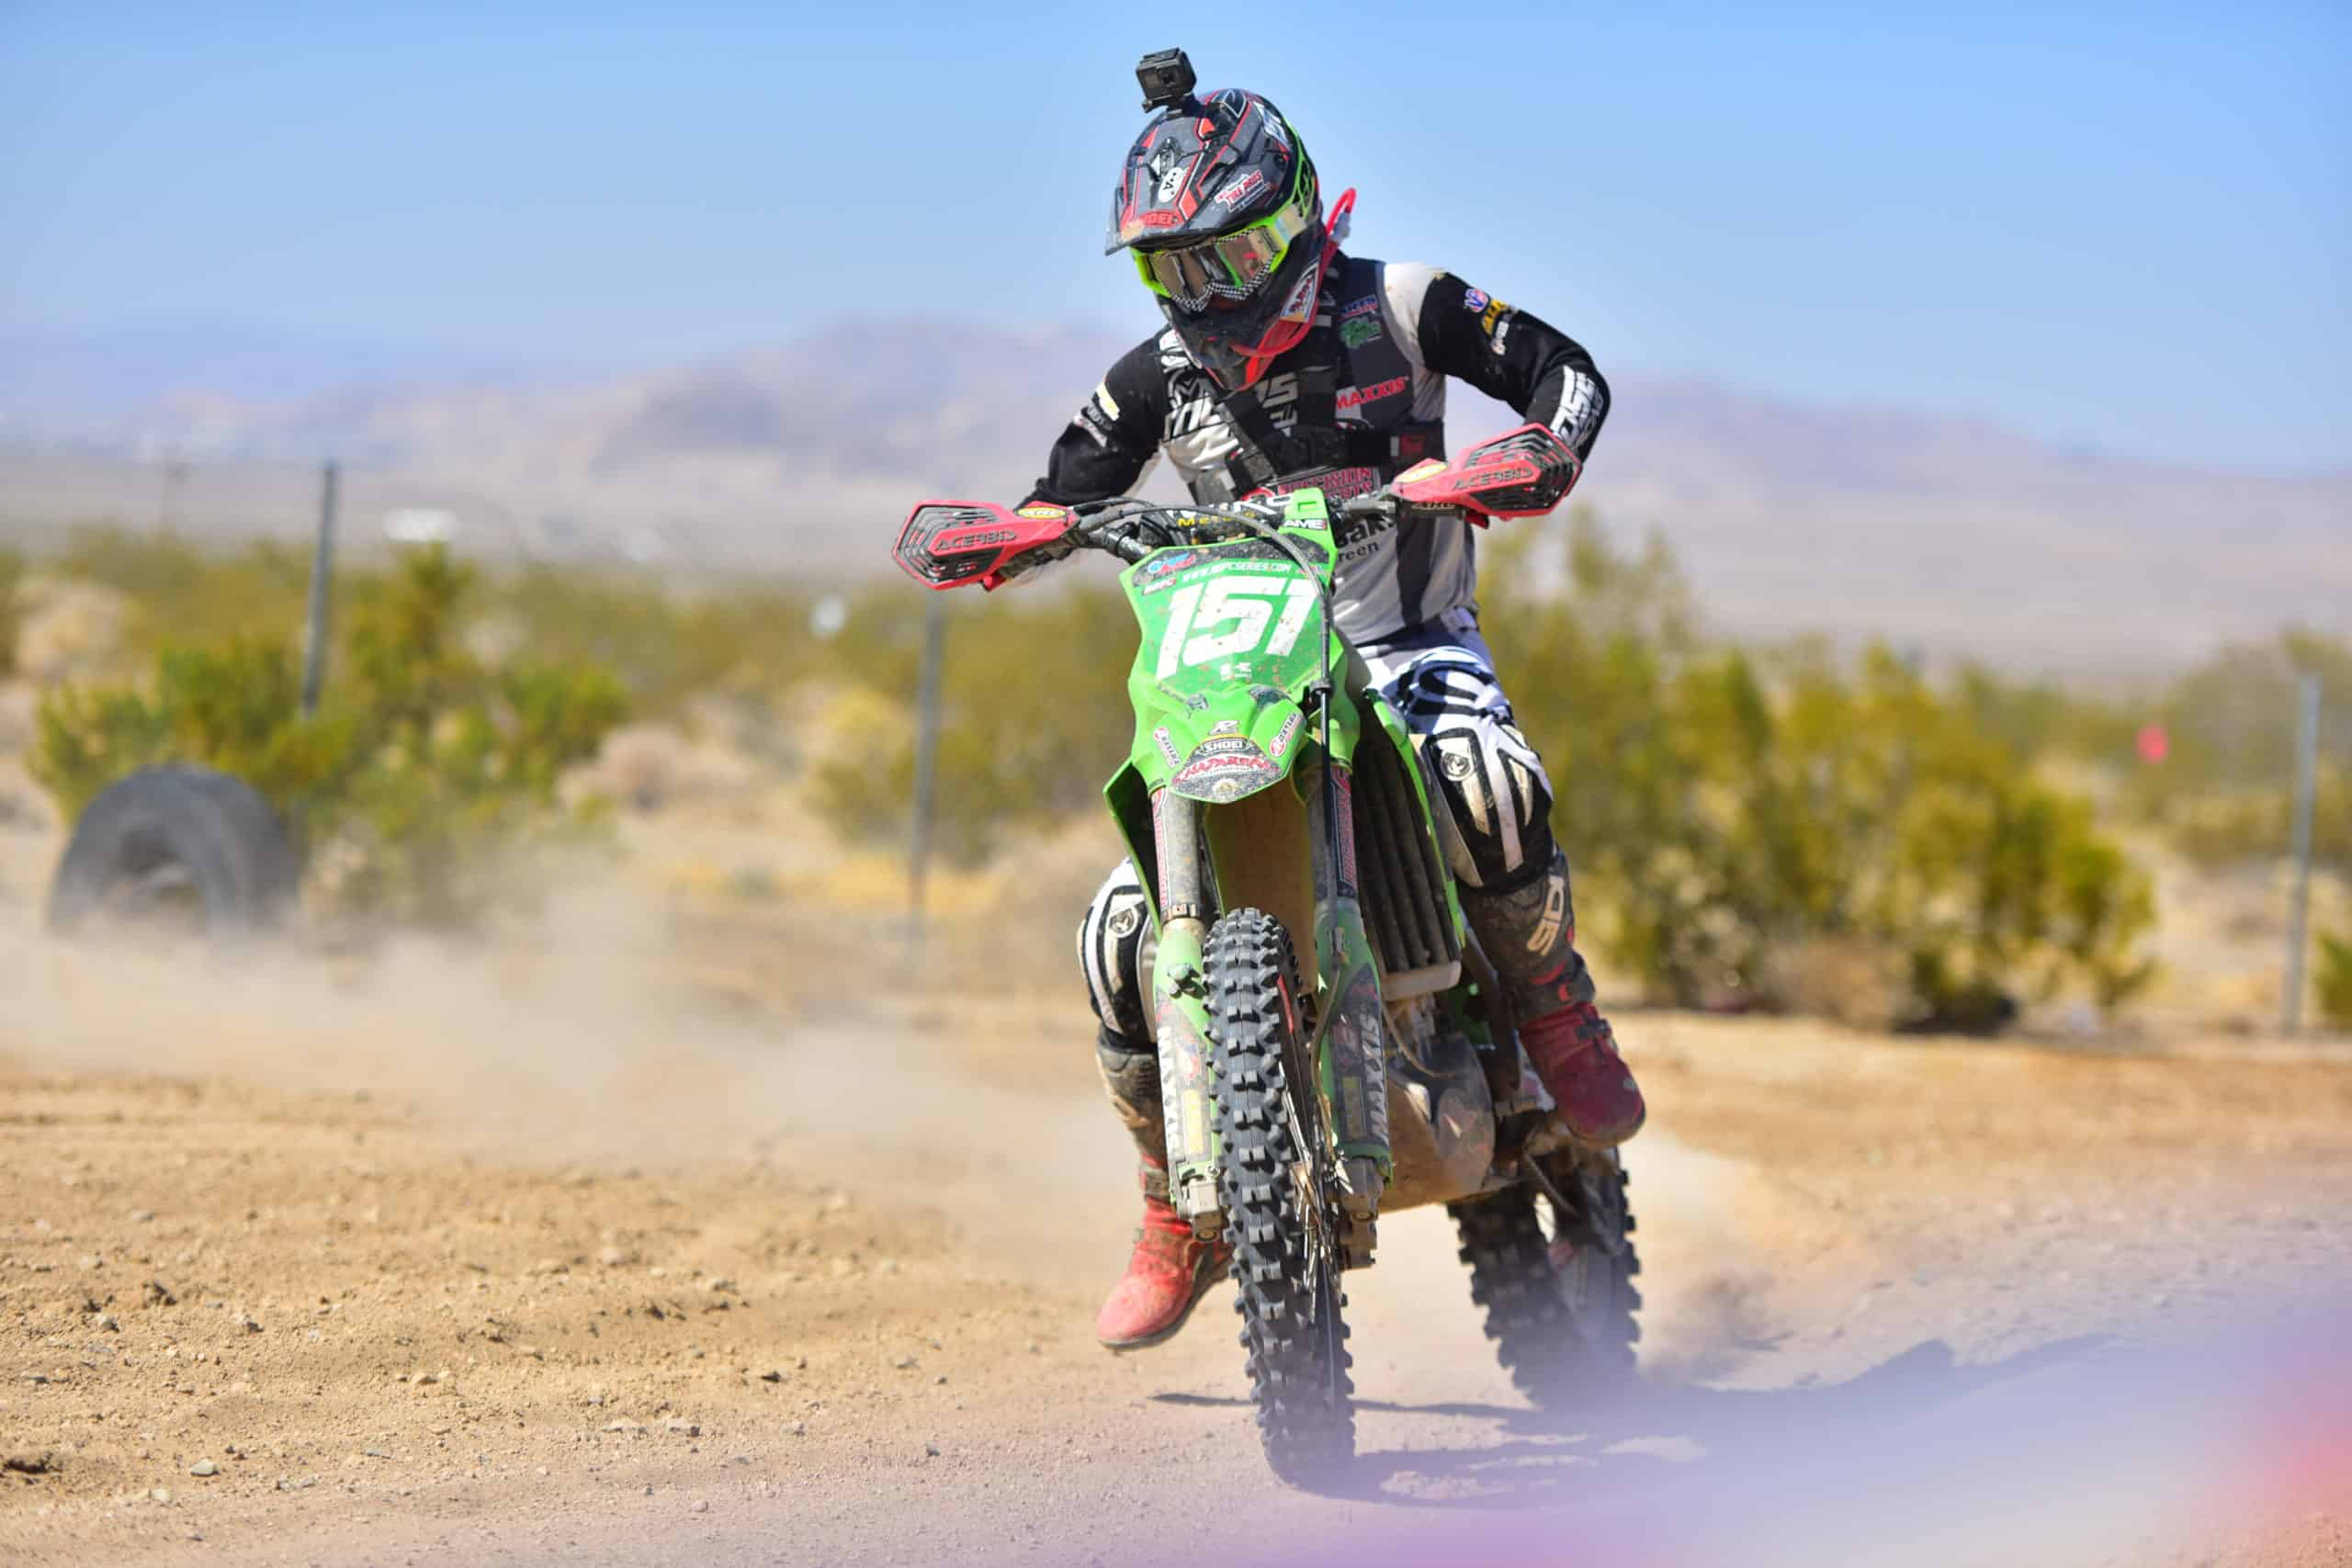 clay hengeveld on his kx250 at the 2020 29 palms 1 ngpc race